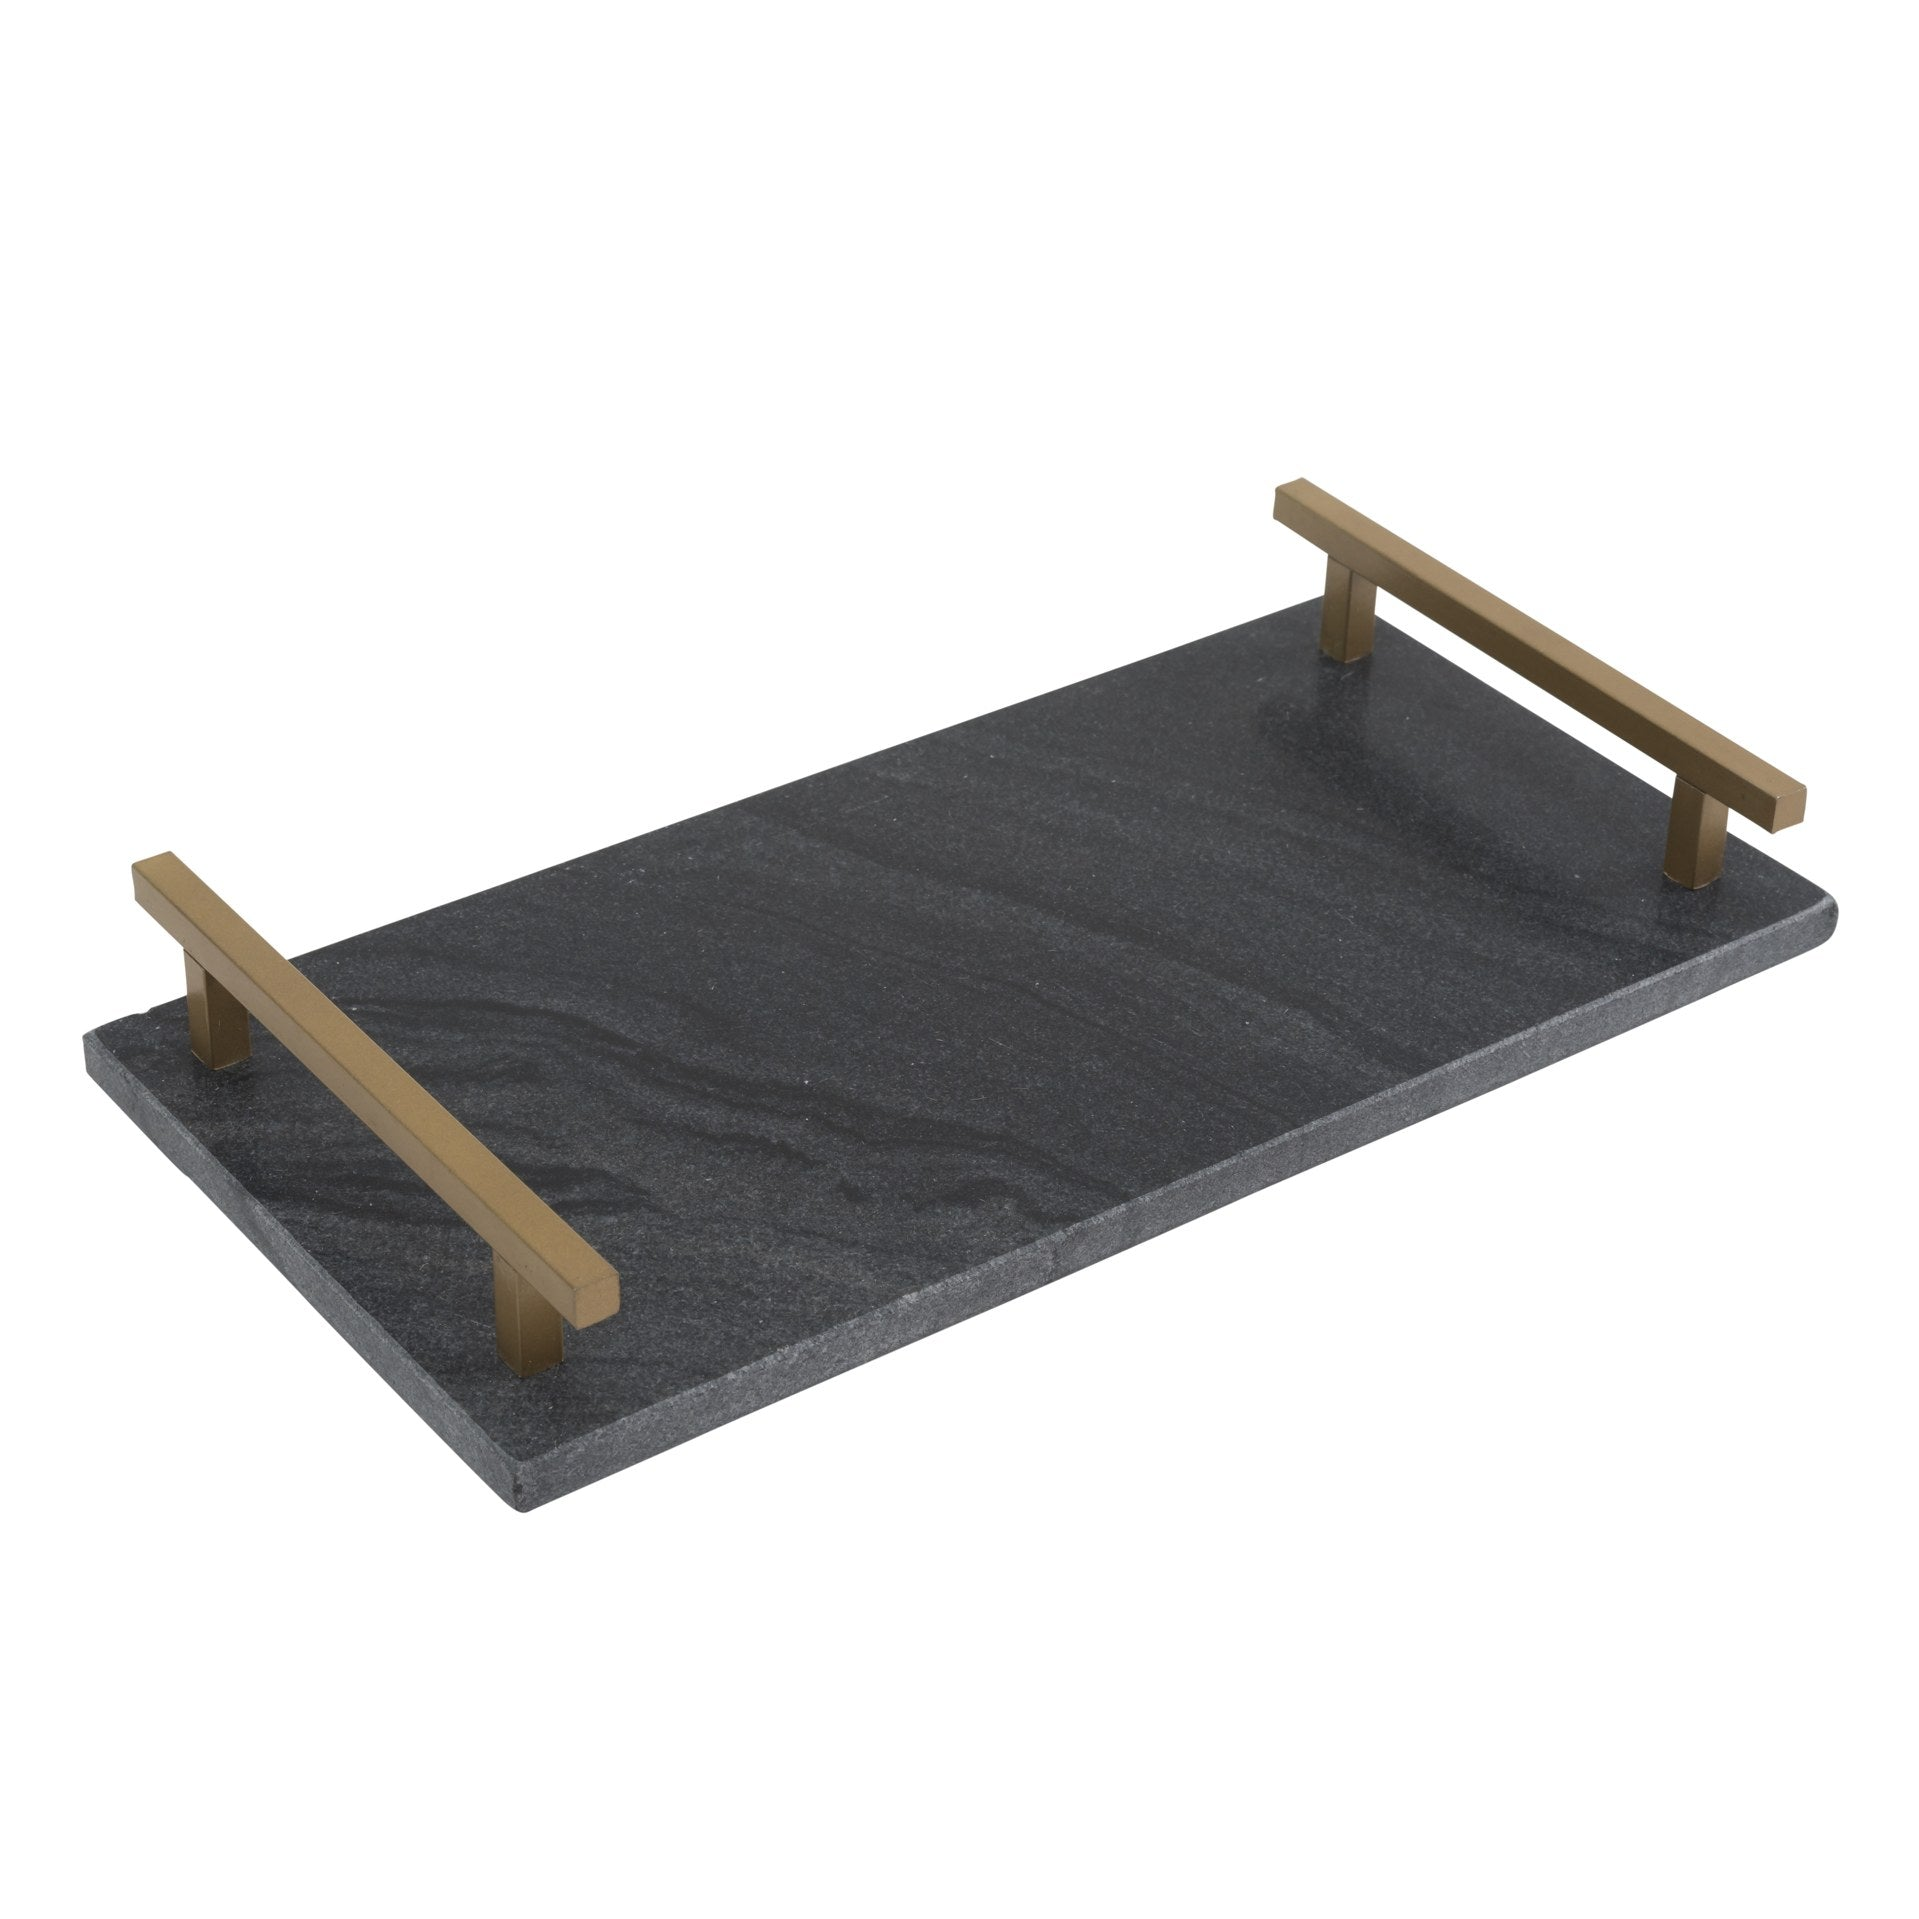 Black Marble Tray with Metal Chrome Handle - CARLYLE AVENUE